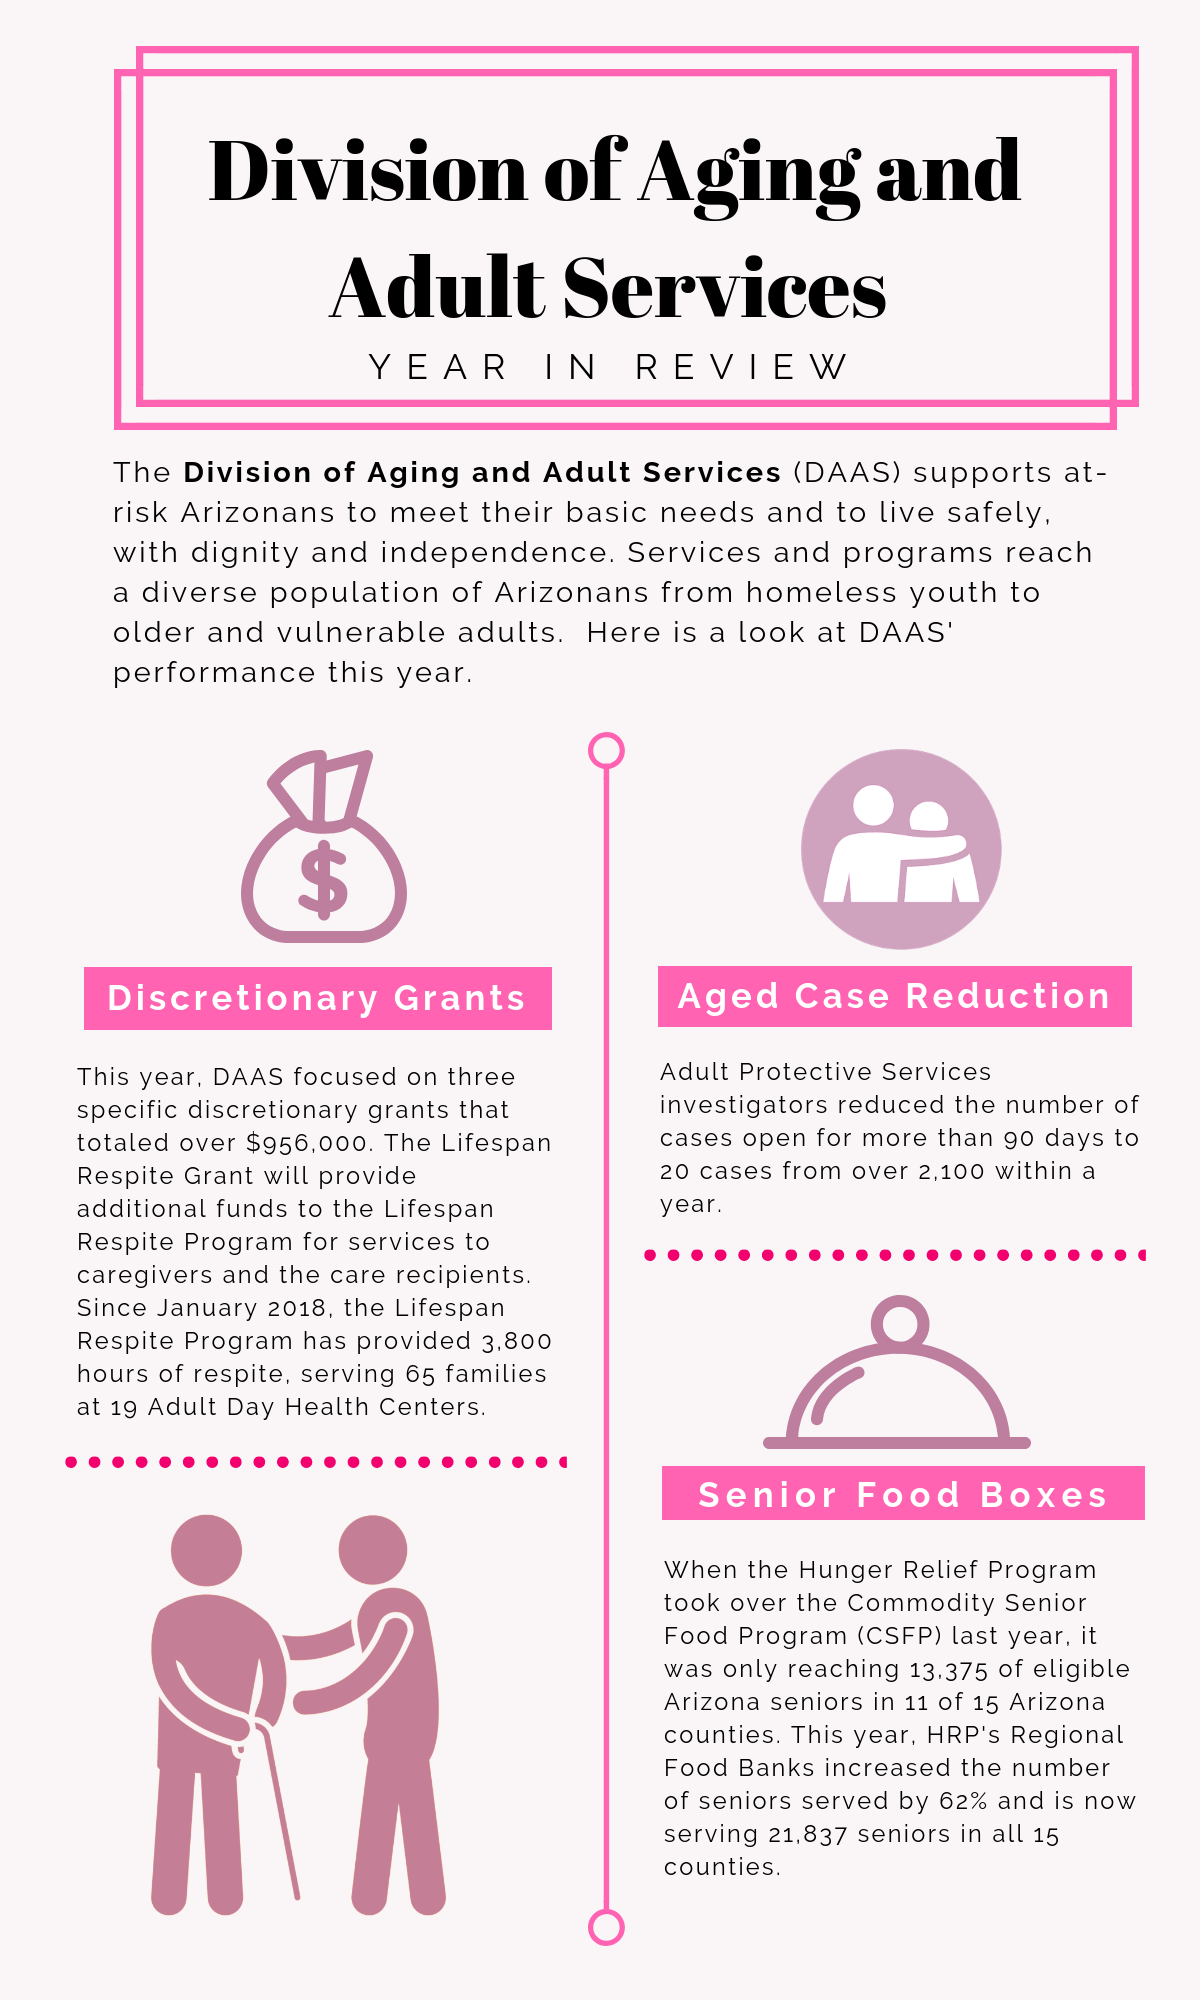 Division of Aging and Adult Services Year in Review 2018